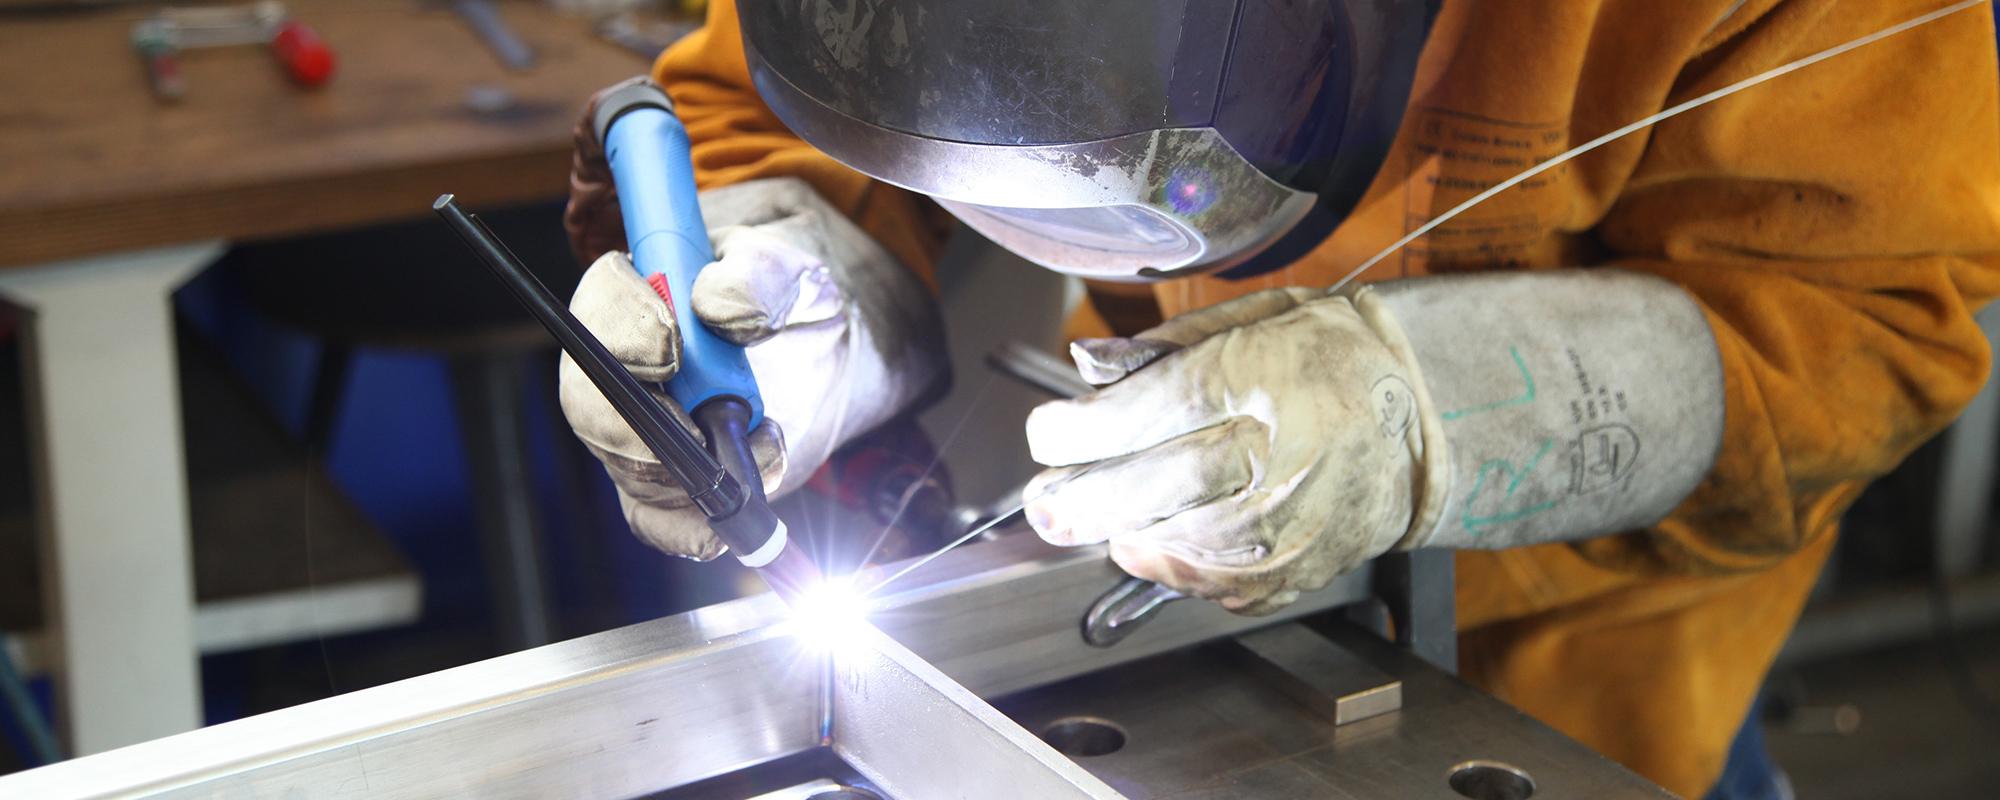 Metal fabrication being carried out in Marianna, FL